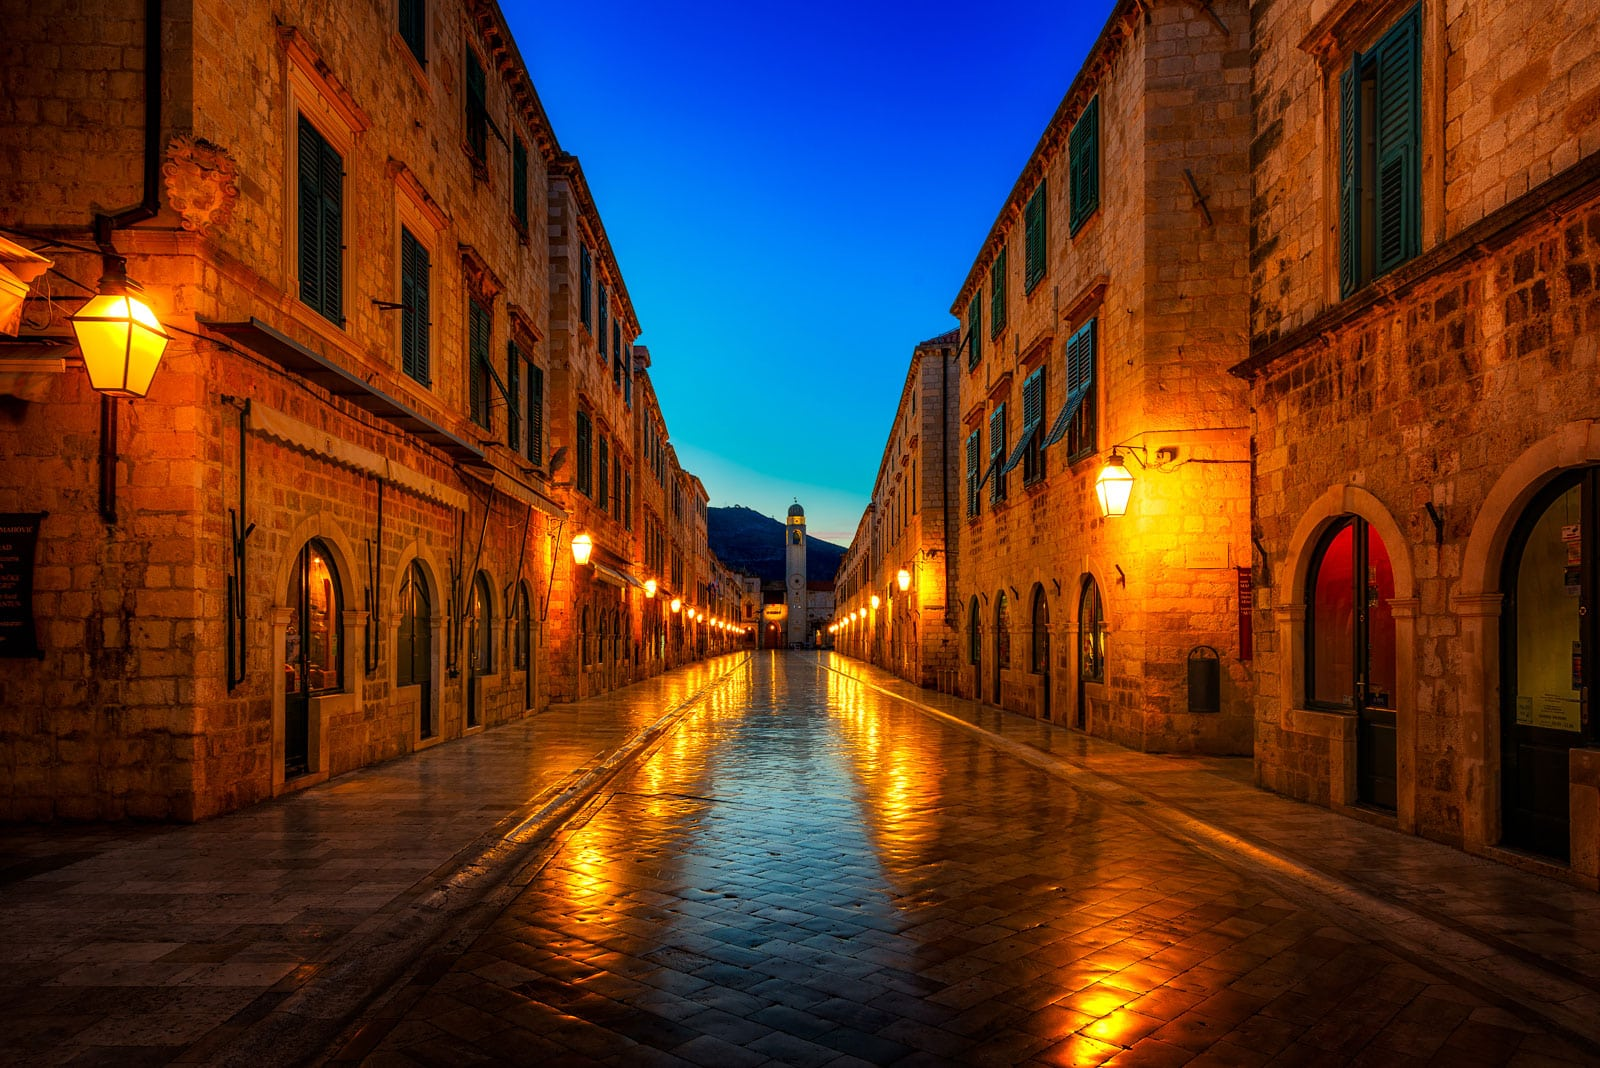 The main street Stradun and bell tower in Dubrovnik, Croatia at night